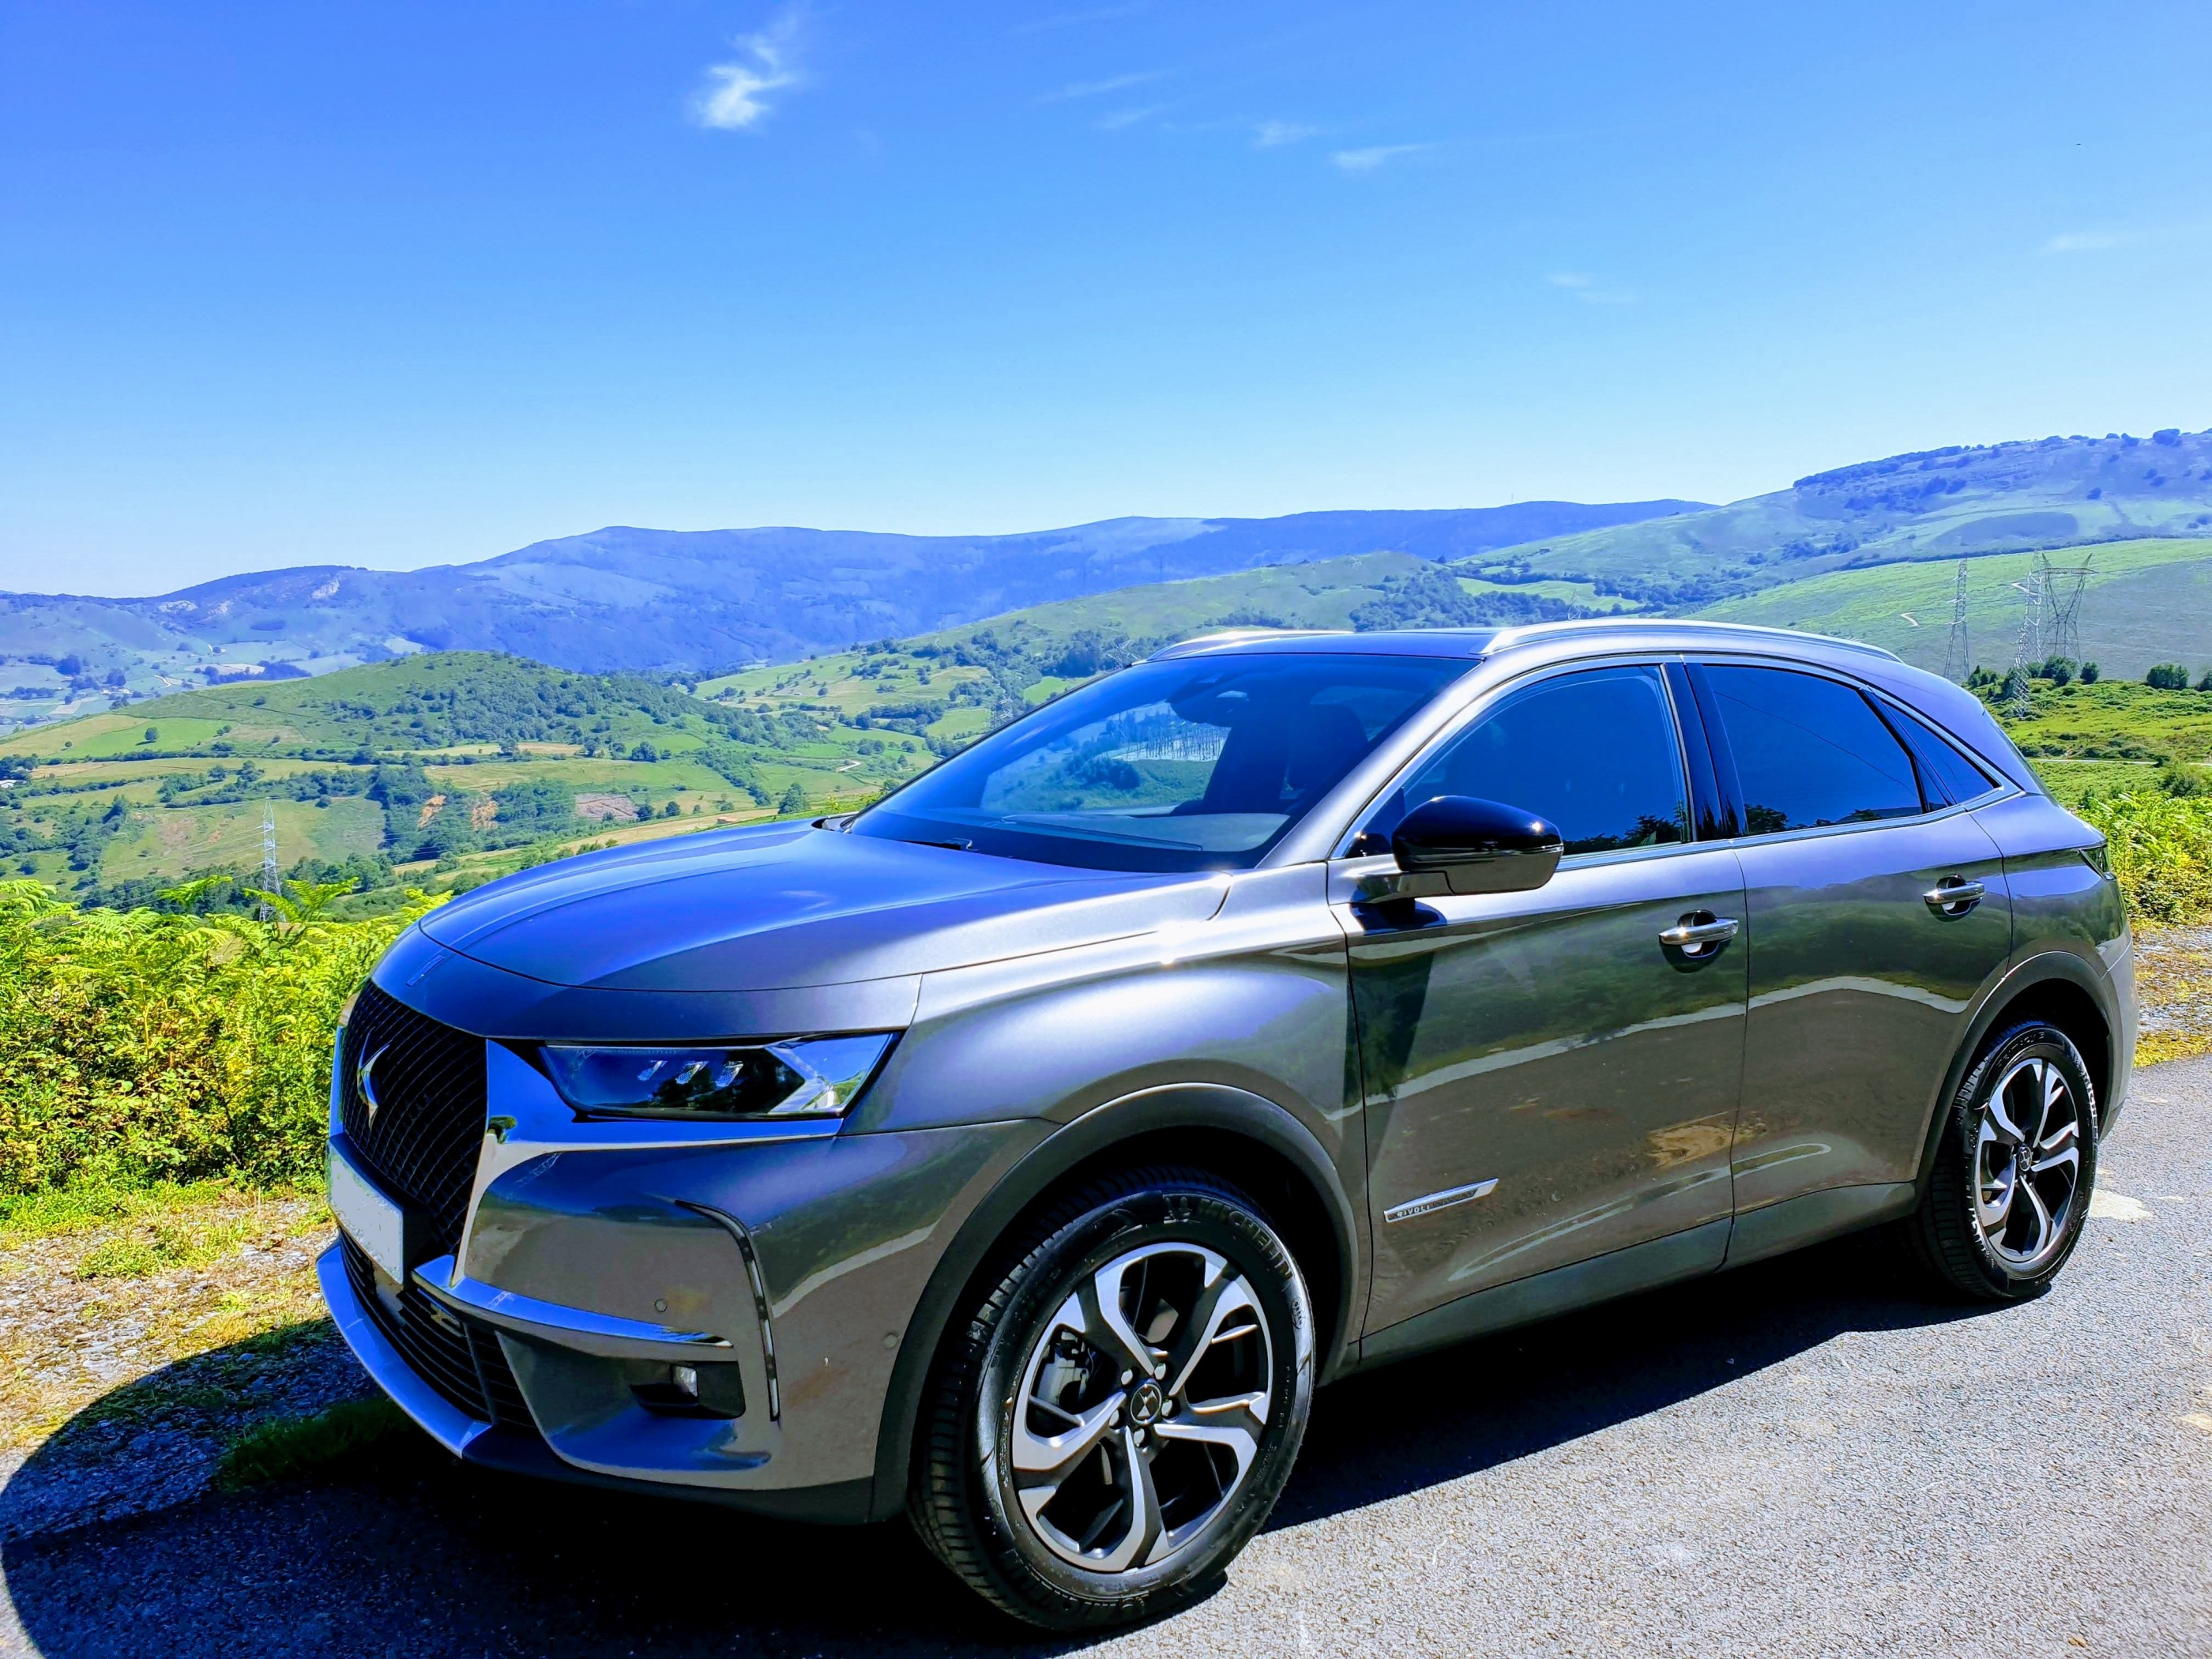 Fotos de vacaciones de vuestros Ds7 crossback 20190711_120731-EFFECTS